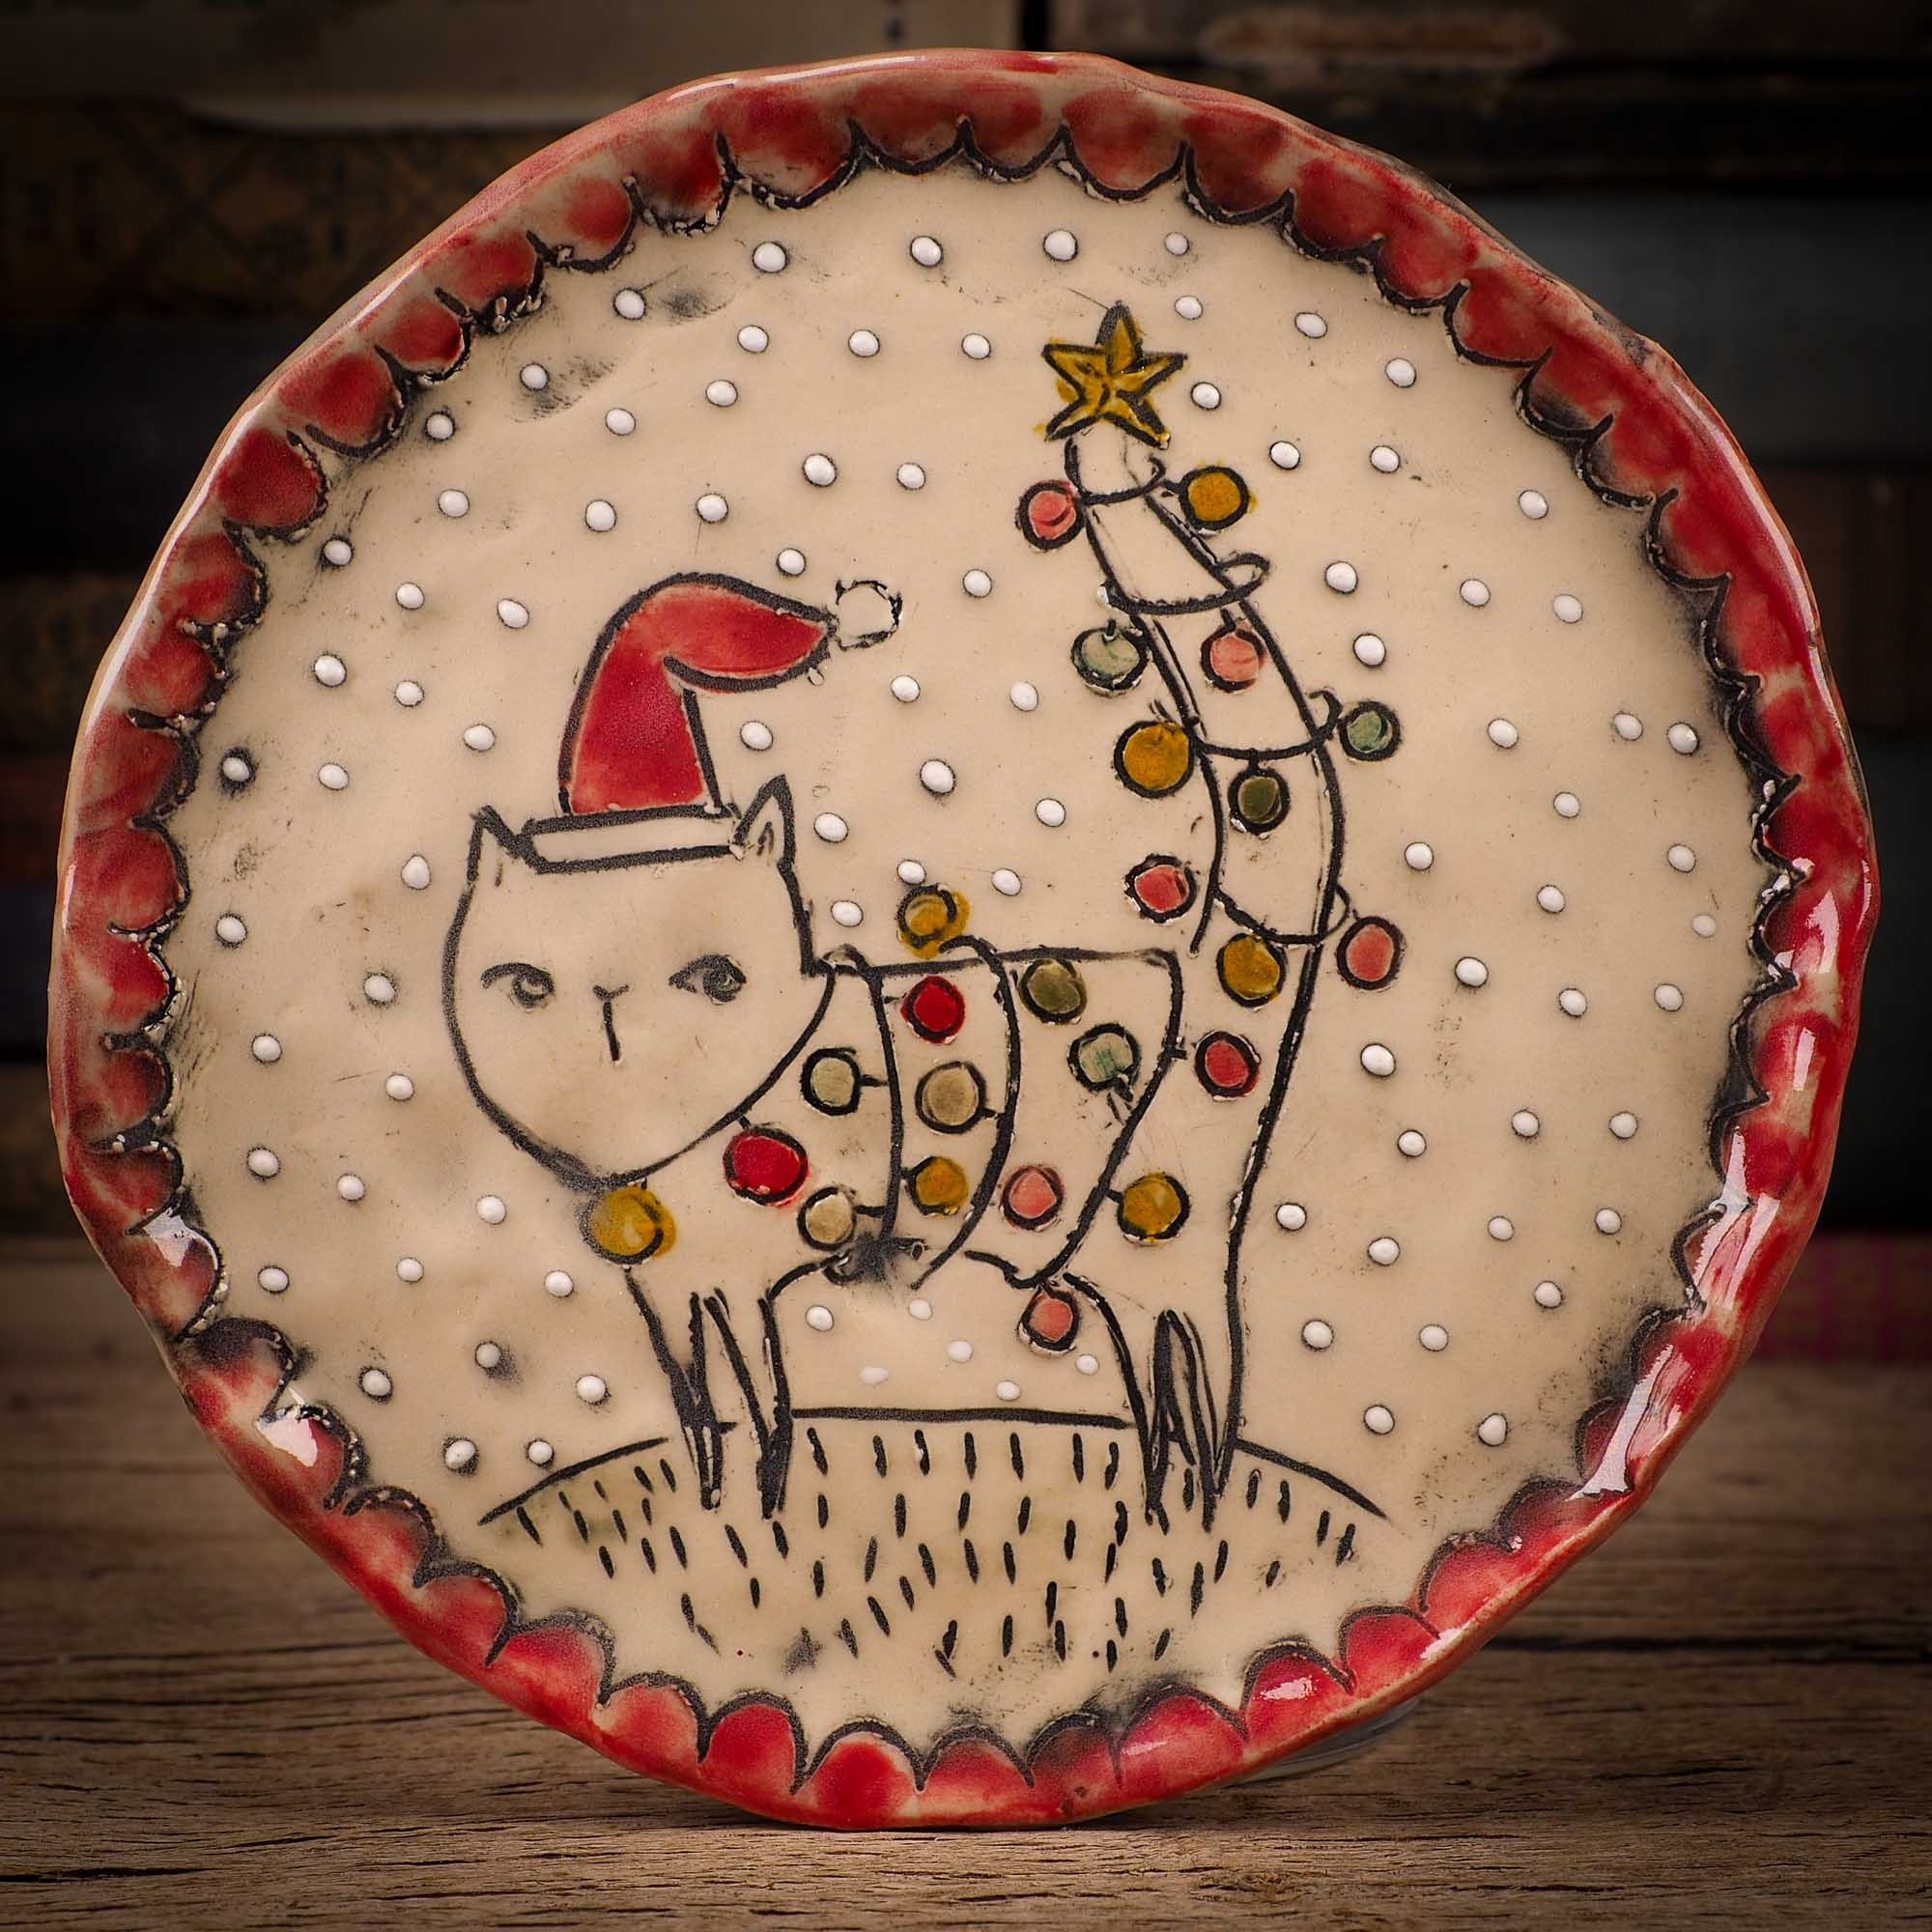 An original Christmas Holiday cake dinner dessert plate round glazed ceramic dinnerware handmade by Idania Salcido, the artist behind Danita Art. Glazed carved sgraffito stoneware, hand painted and decorated, it is illustrated by hand with snowmen, Christmas trees, Santa Claus, angels and snow balls and winter themes.